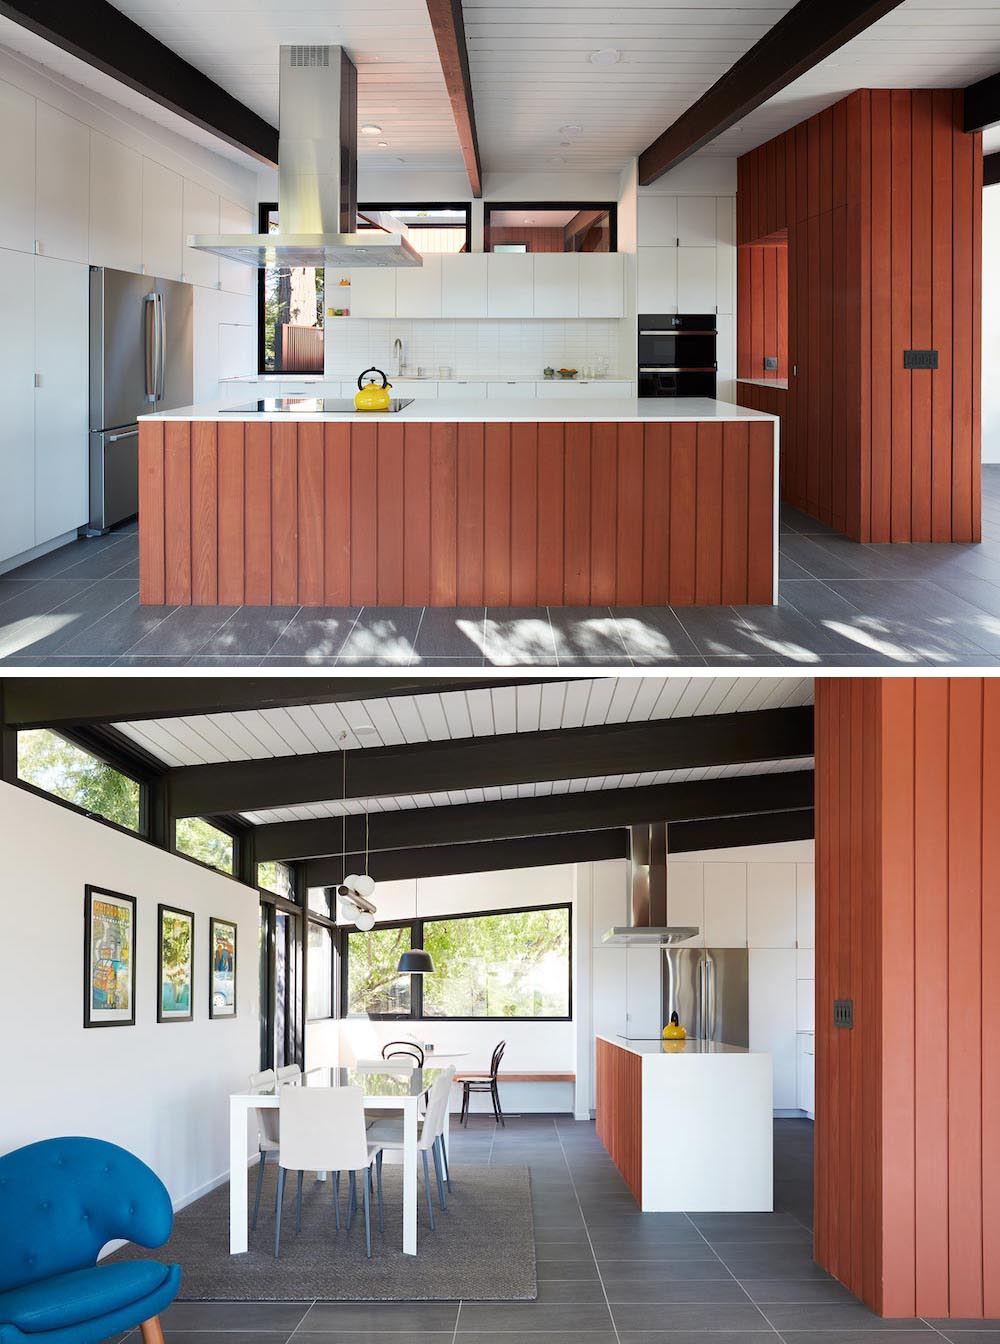 A remodeled kitchen with white cabinets, an open dining area, and a corner breakfast nook.